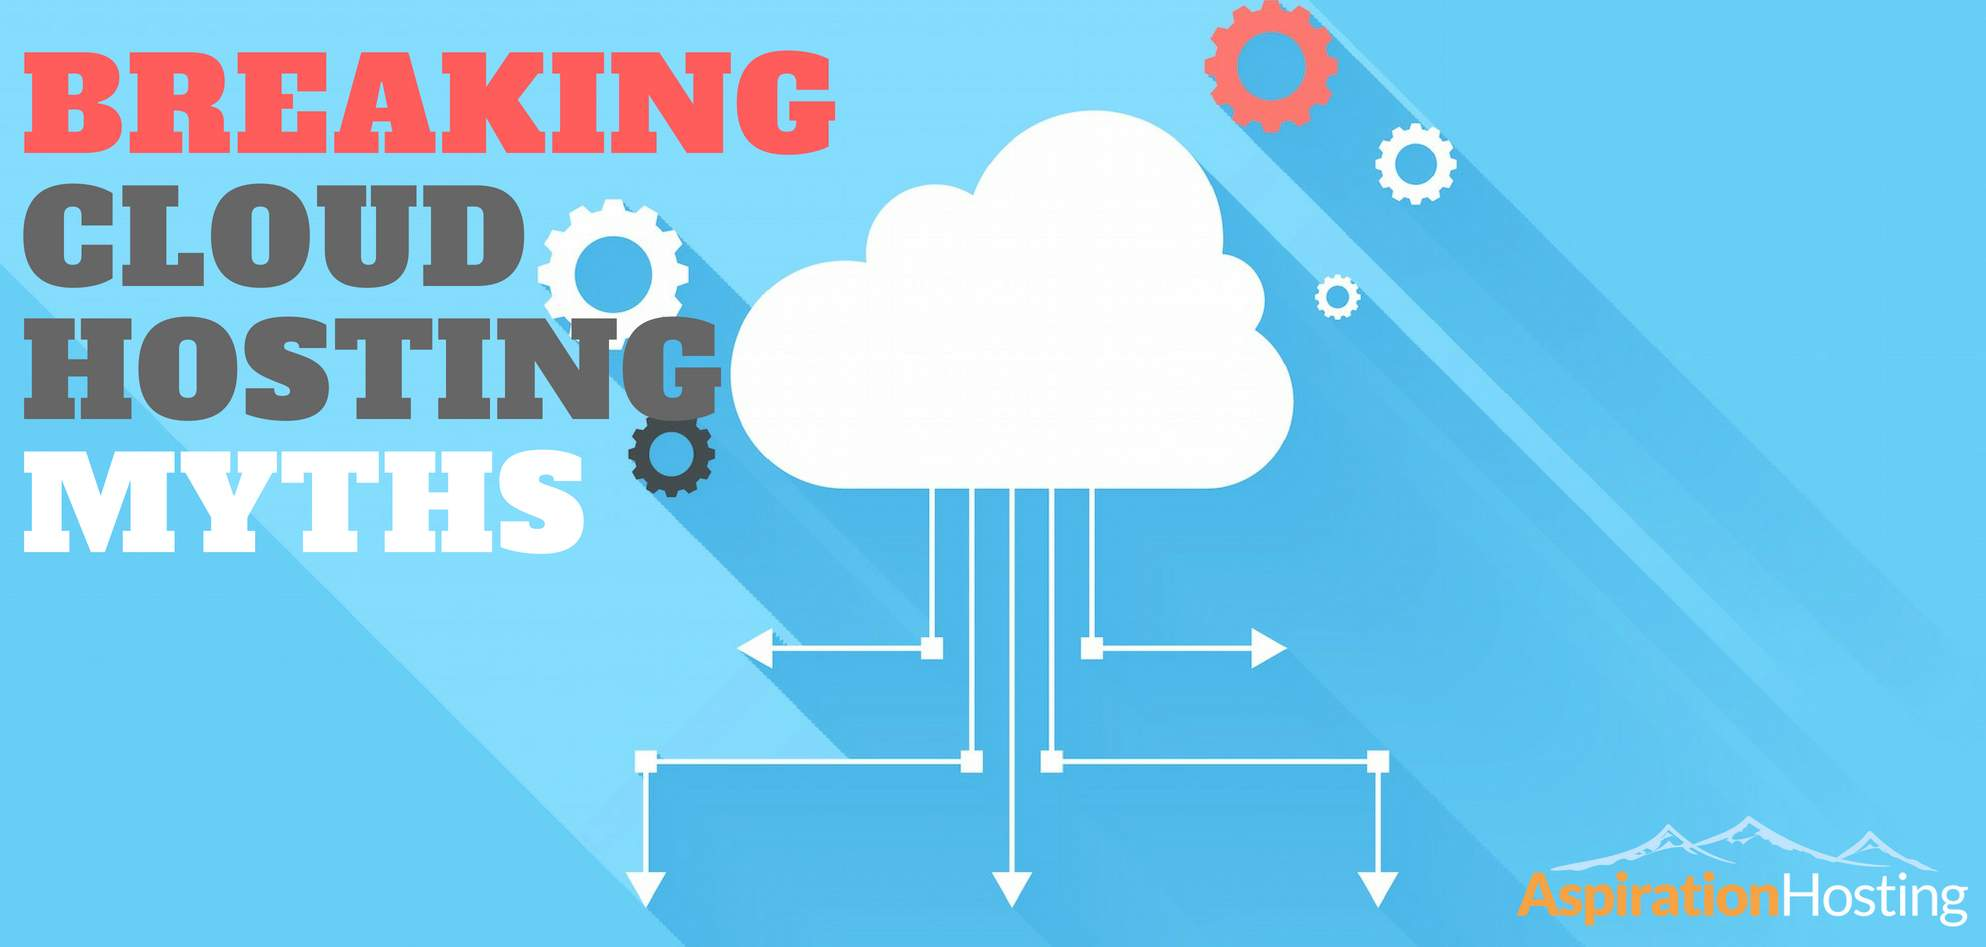 Breaking cloud hosting myths Aspiration Hosting